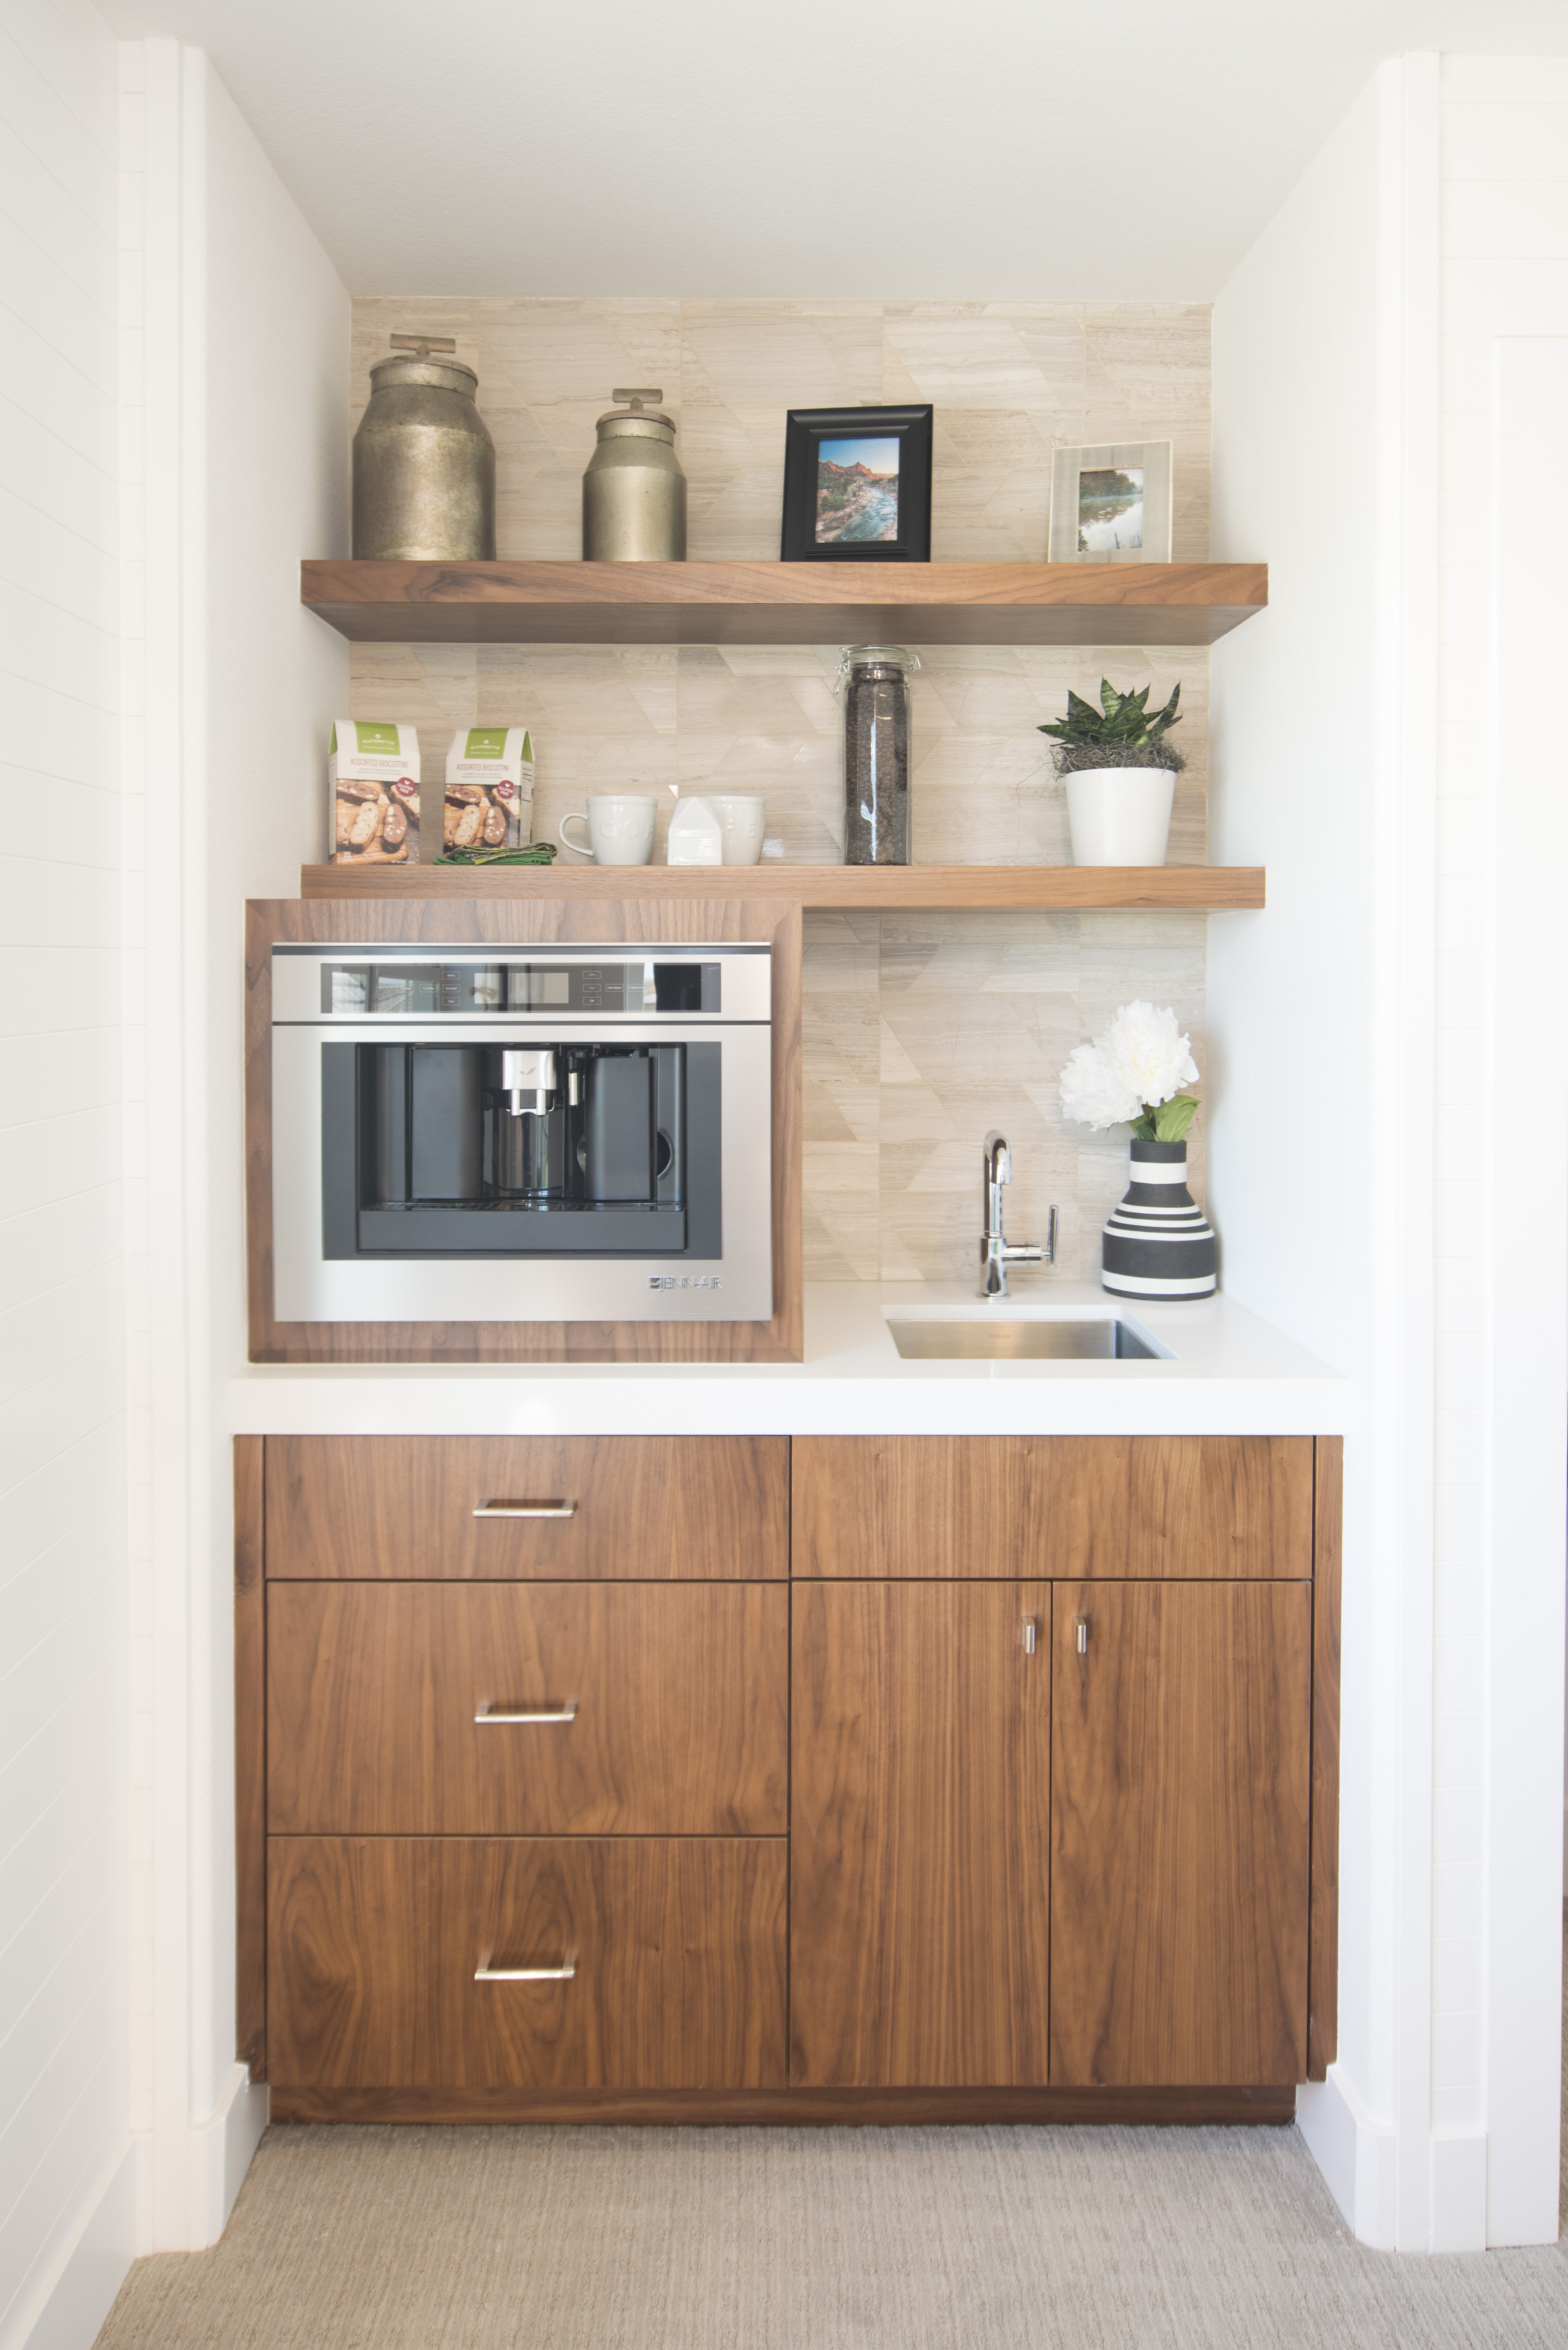 Walnut Contemporary Bedroom Built-in with a Jennar Coffee Machine System and Floating Shelves